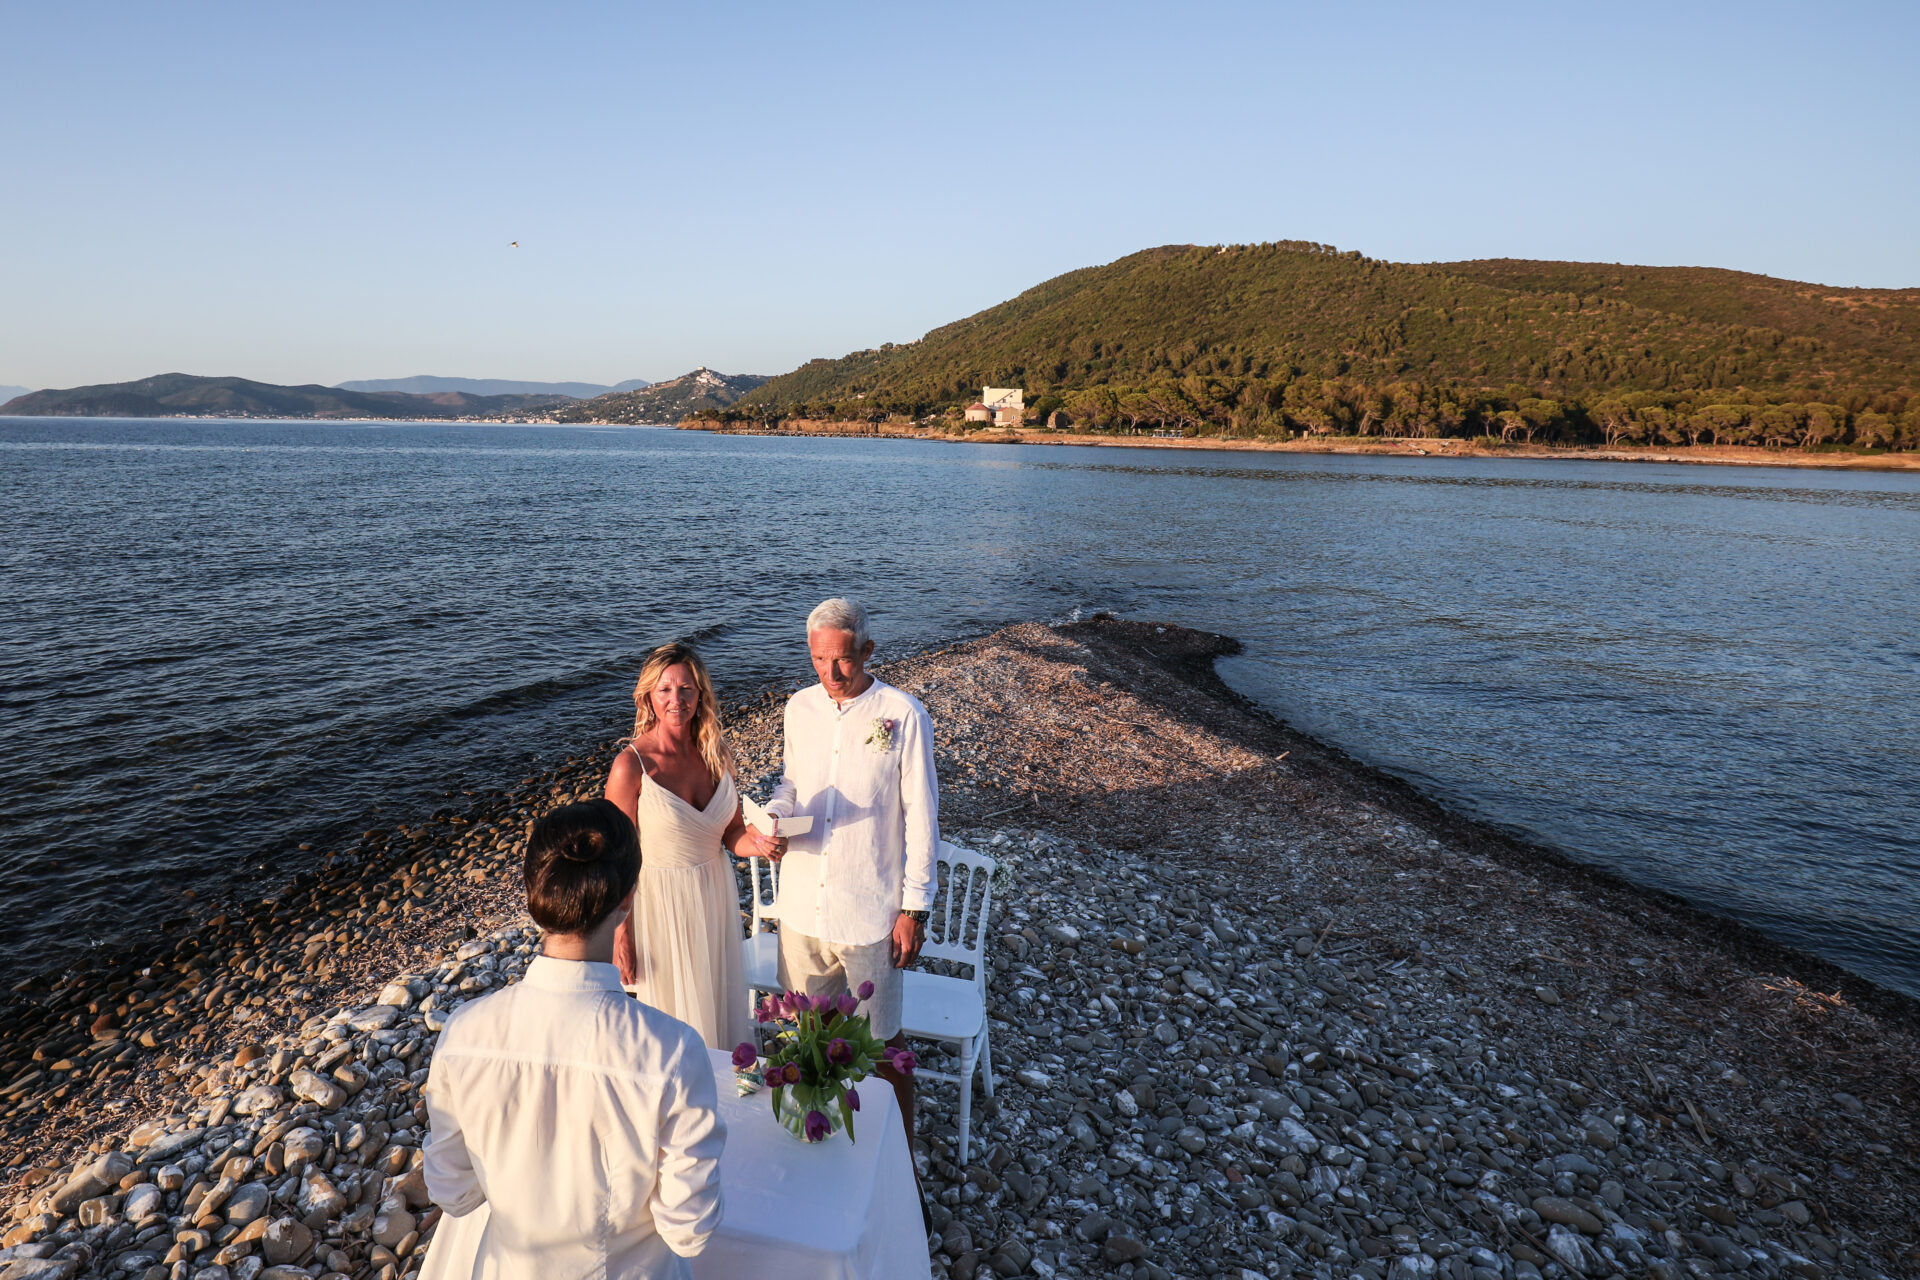 Weddings in Secluded Areas